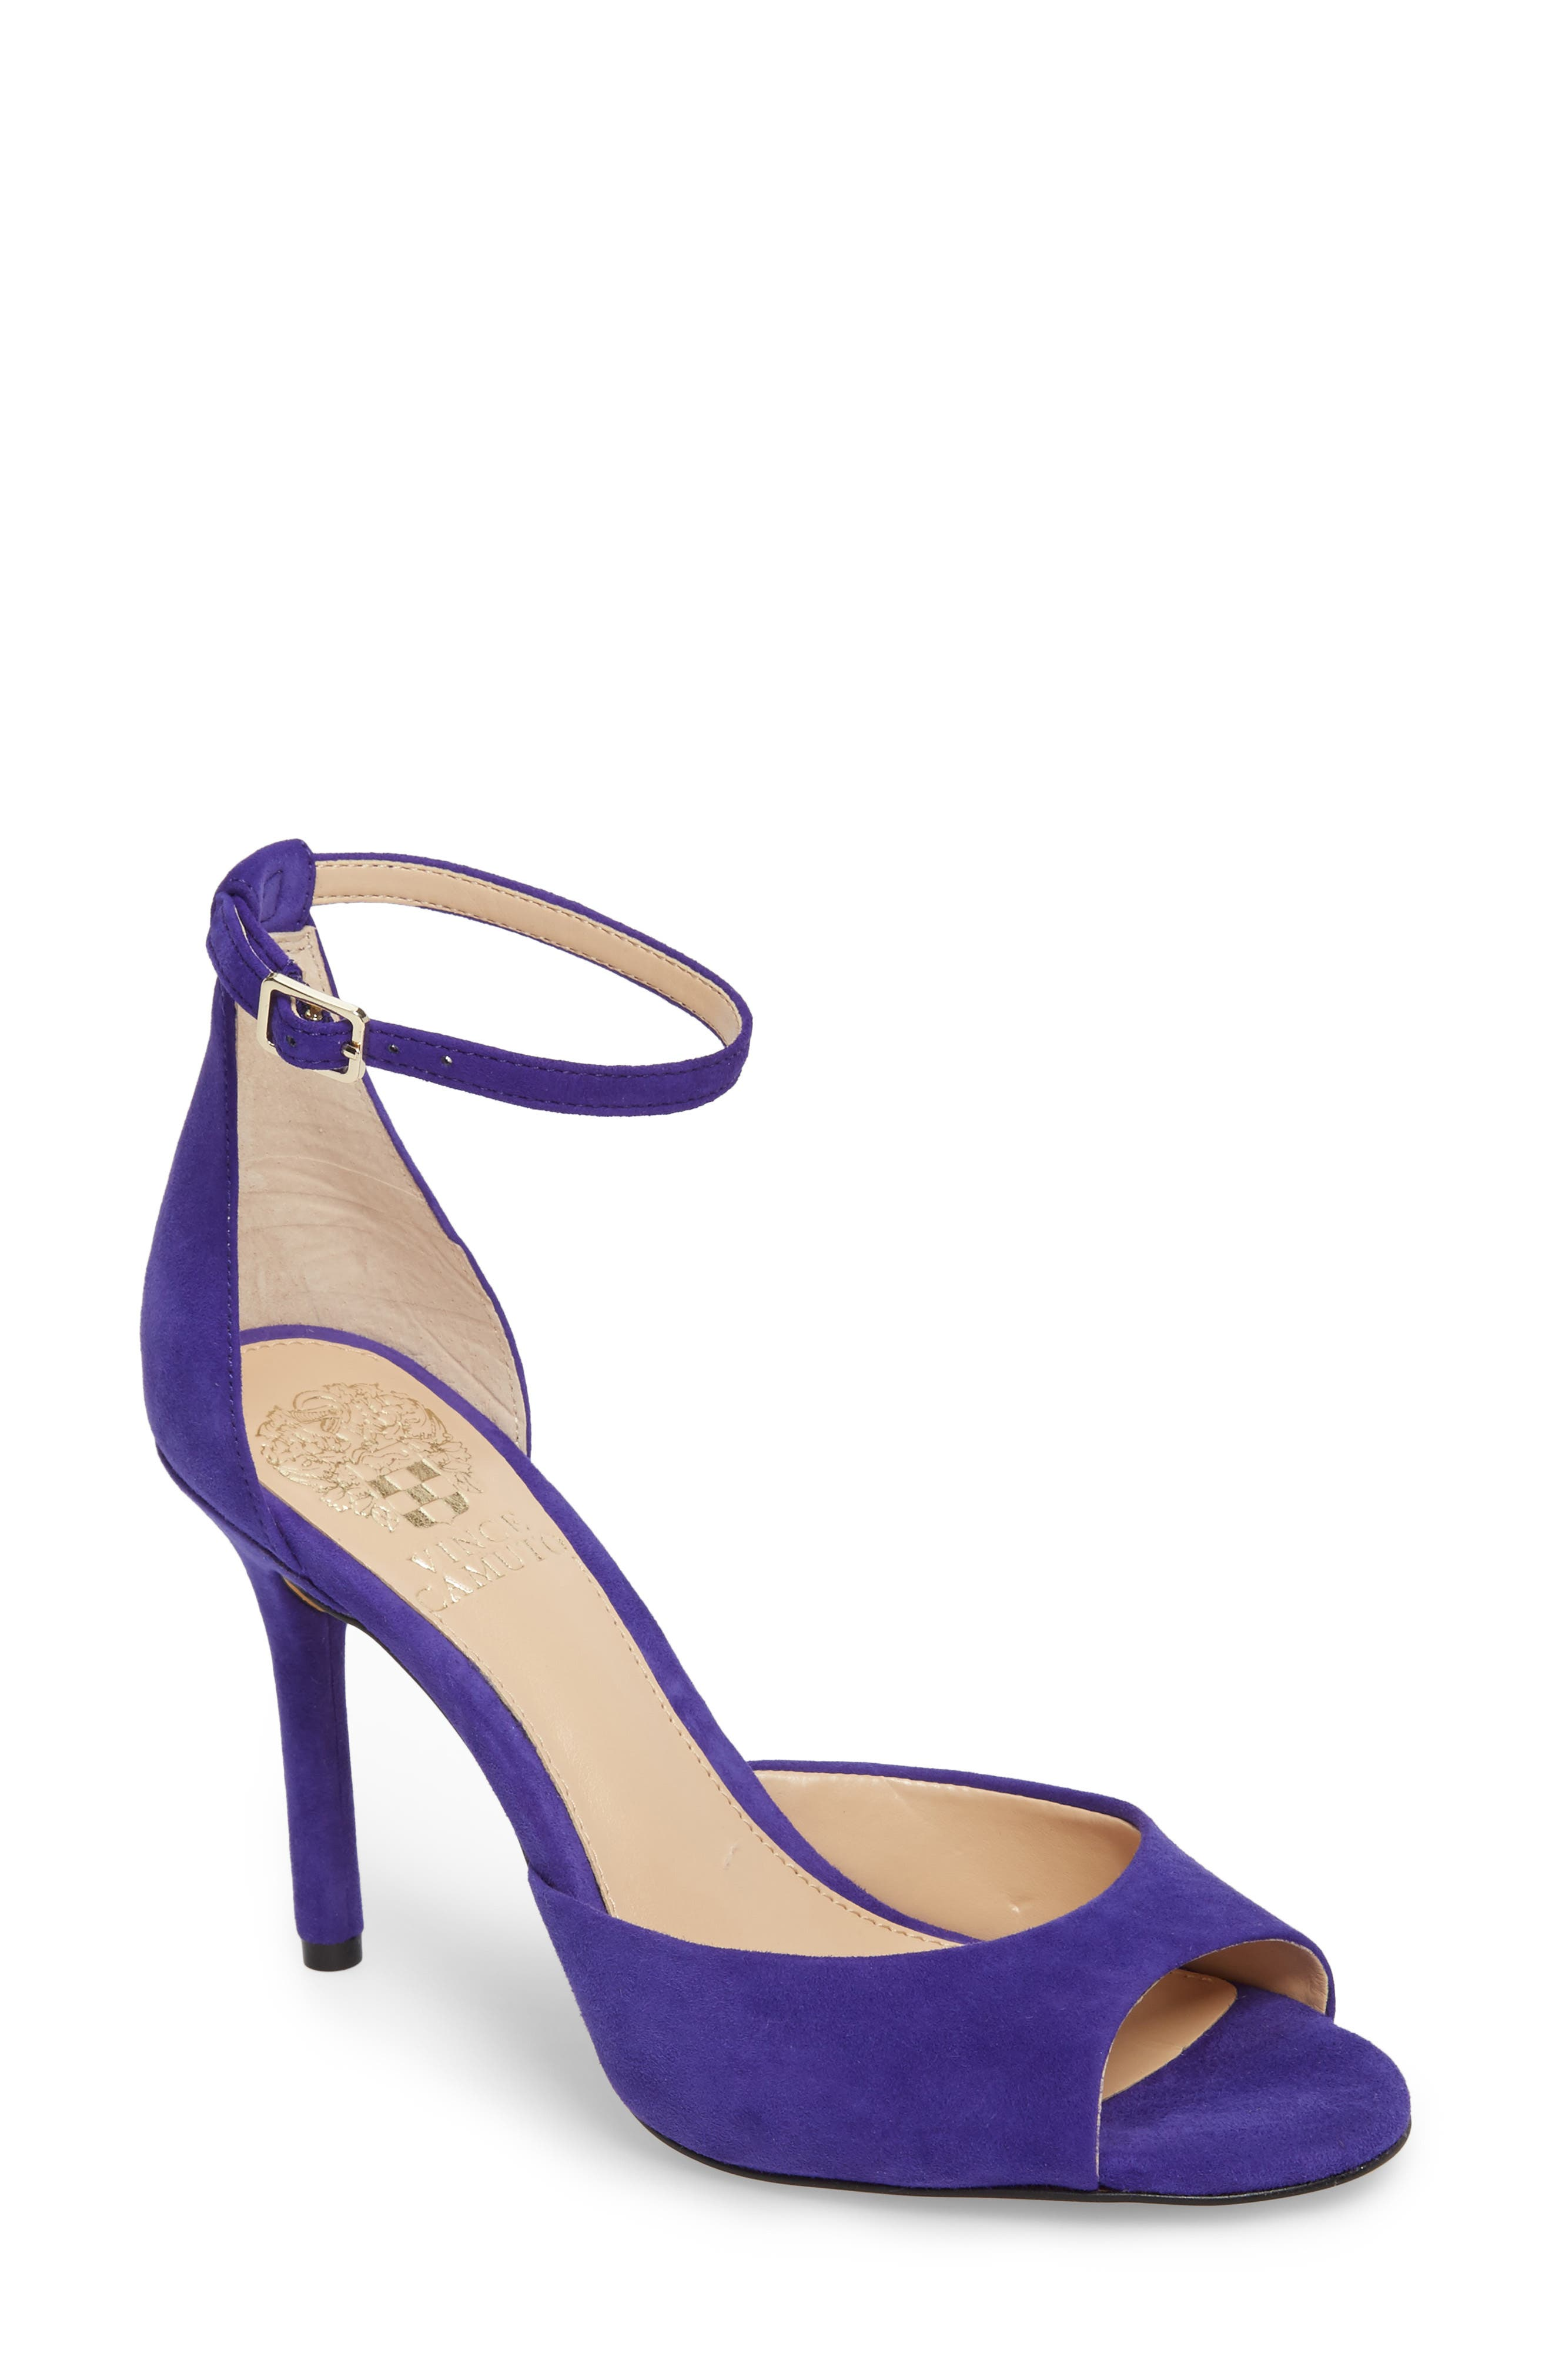 Main Image - Vince Camuto Calinas Sandal (Women) (Nordstrom Exclusive)